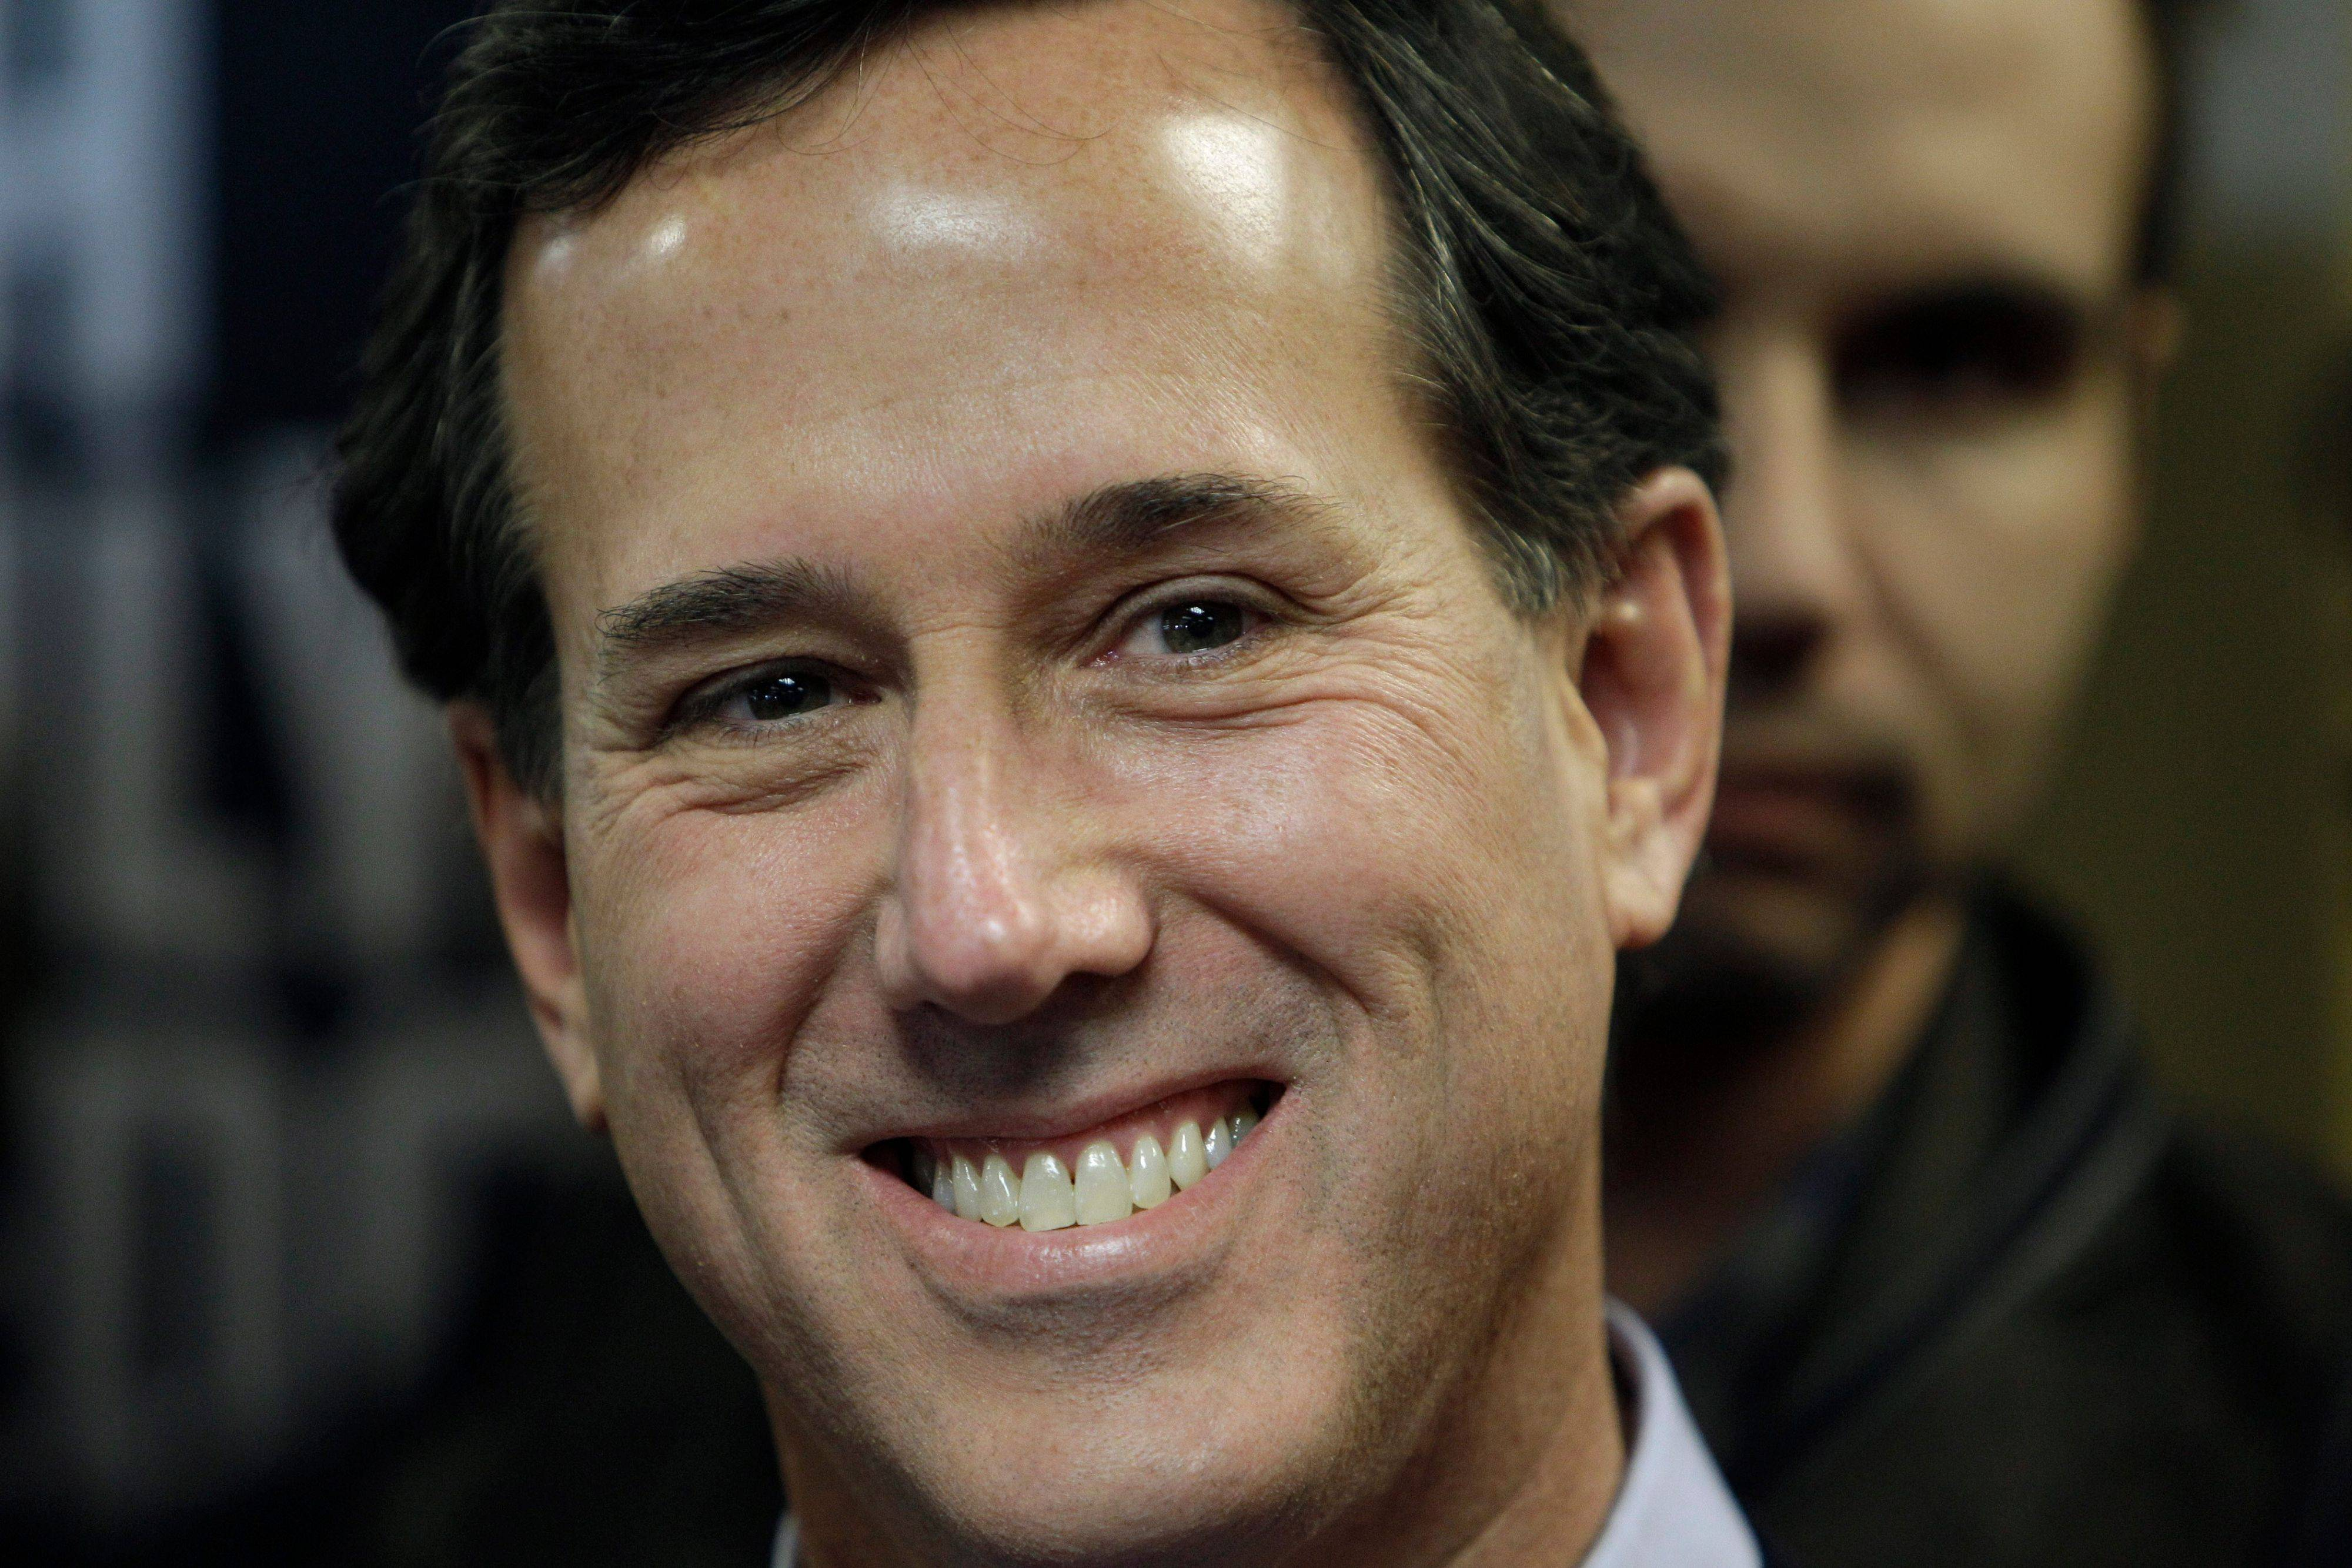 Republican presidential candidate Rick Santorum graduated from Carmel Catholic High School in 1976. He attended the Mundelein school for a year.